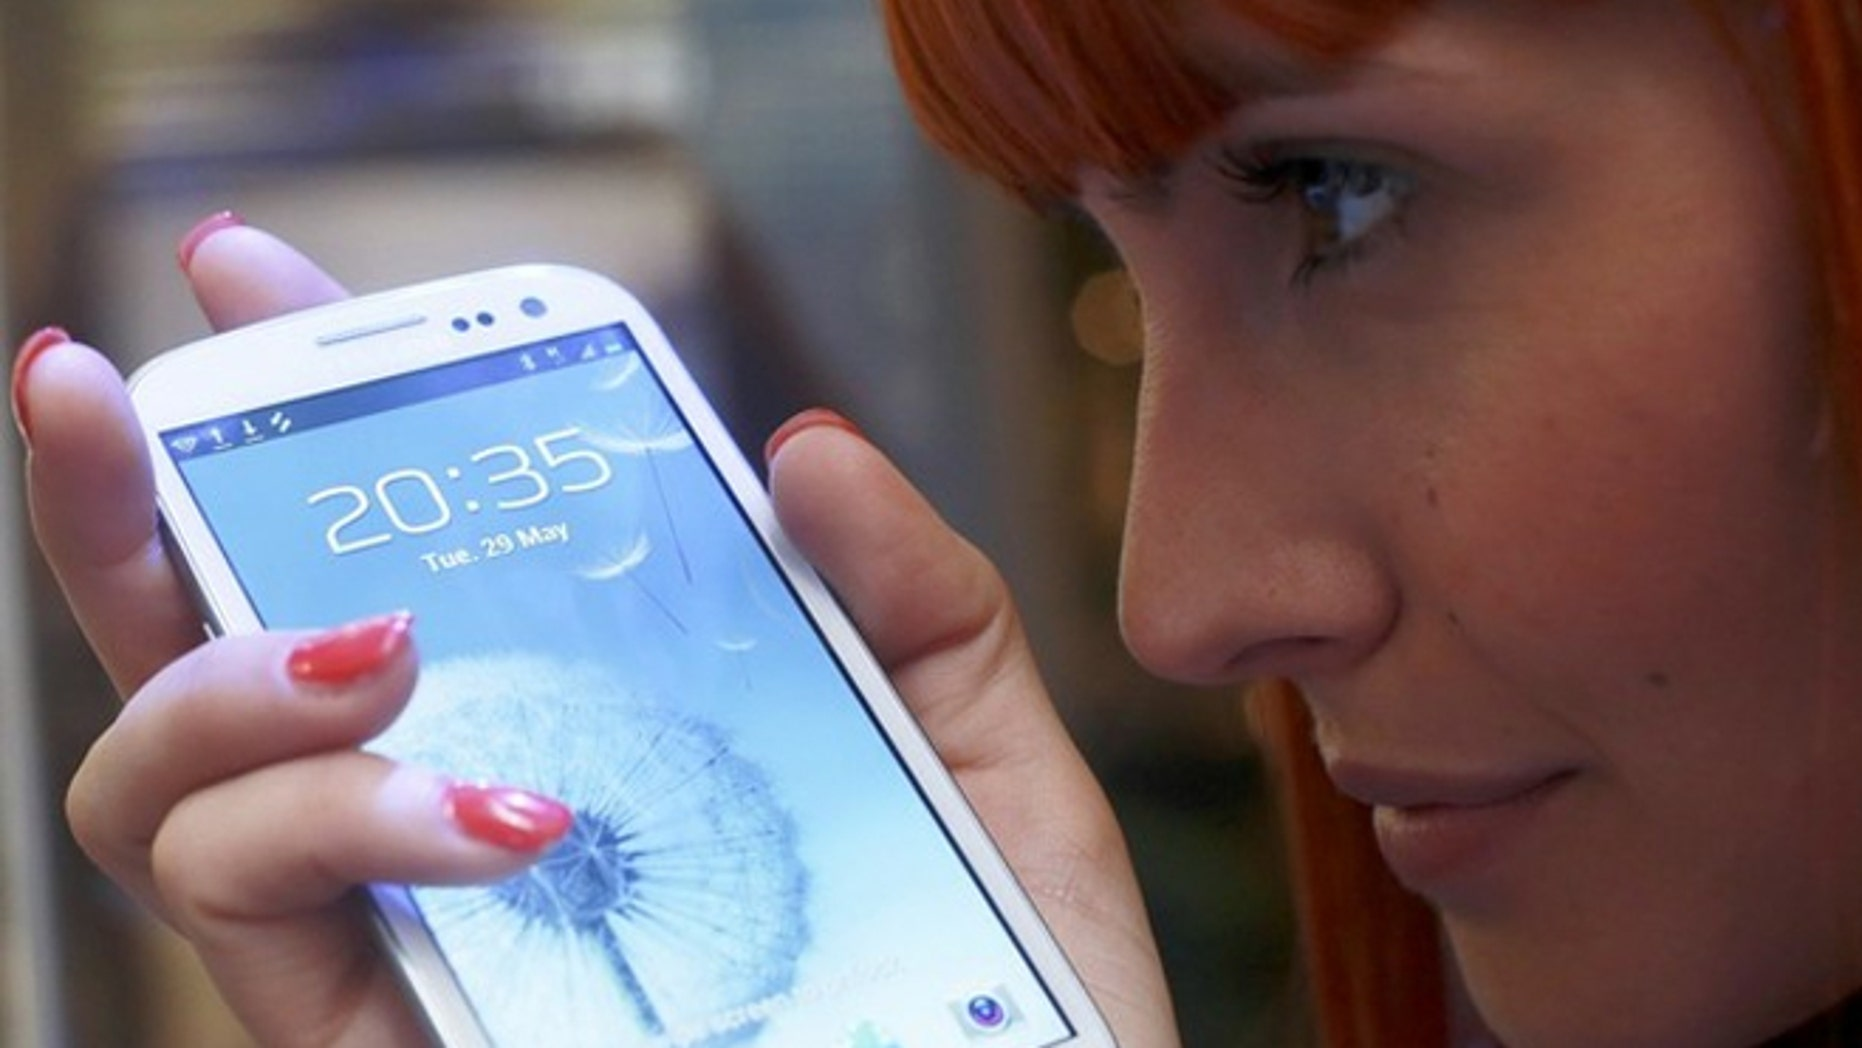 A shop assistant poses with the new Galaxy S III smartphone. Now Samsung wants to get in the social network game.